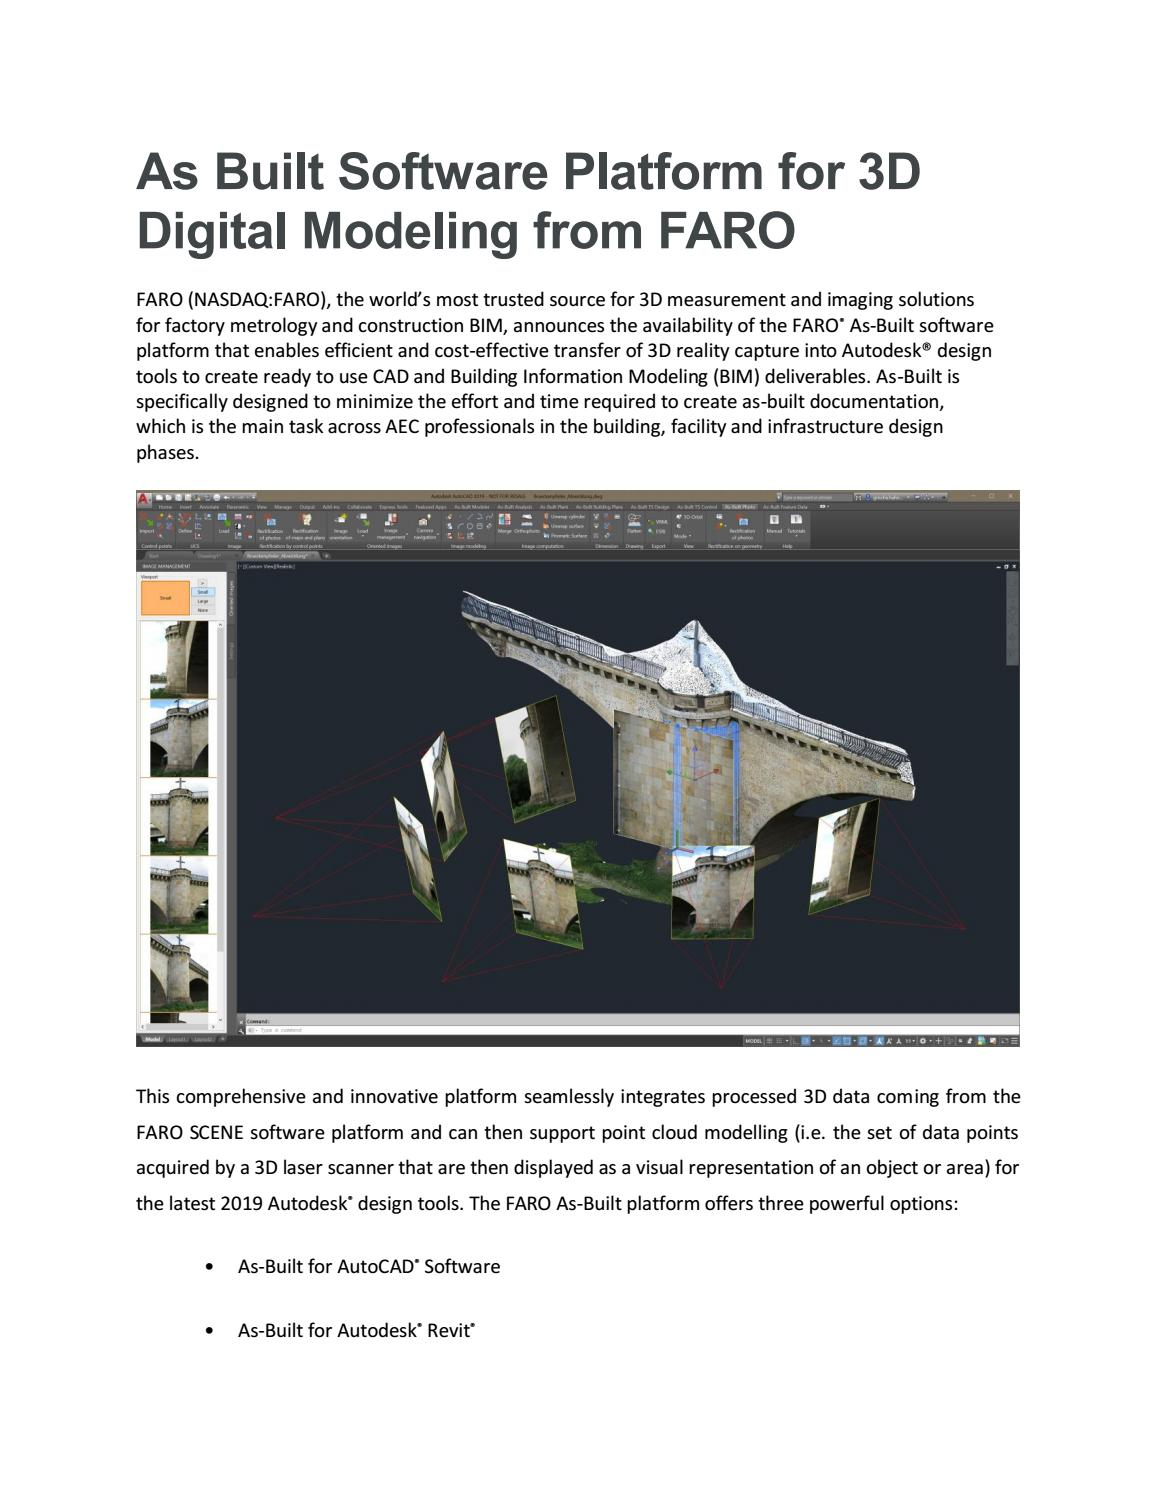 As built software platform for 3d digital modeling from faro